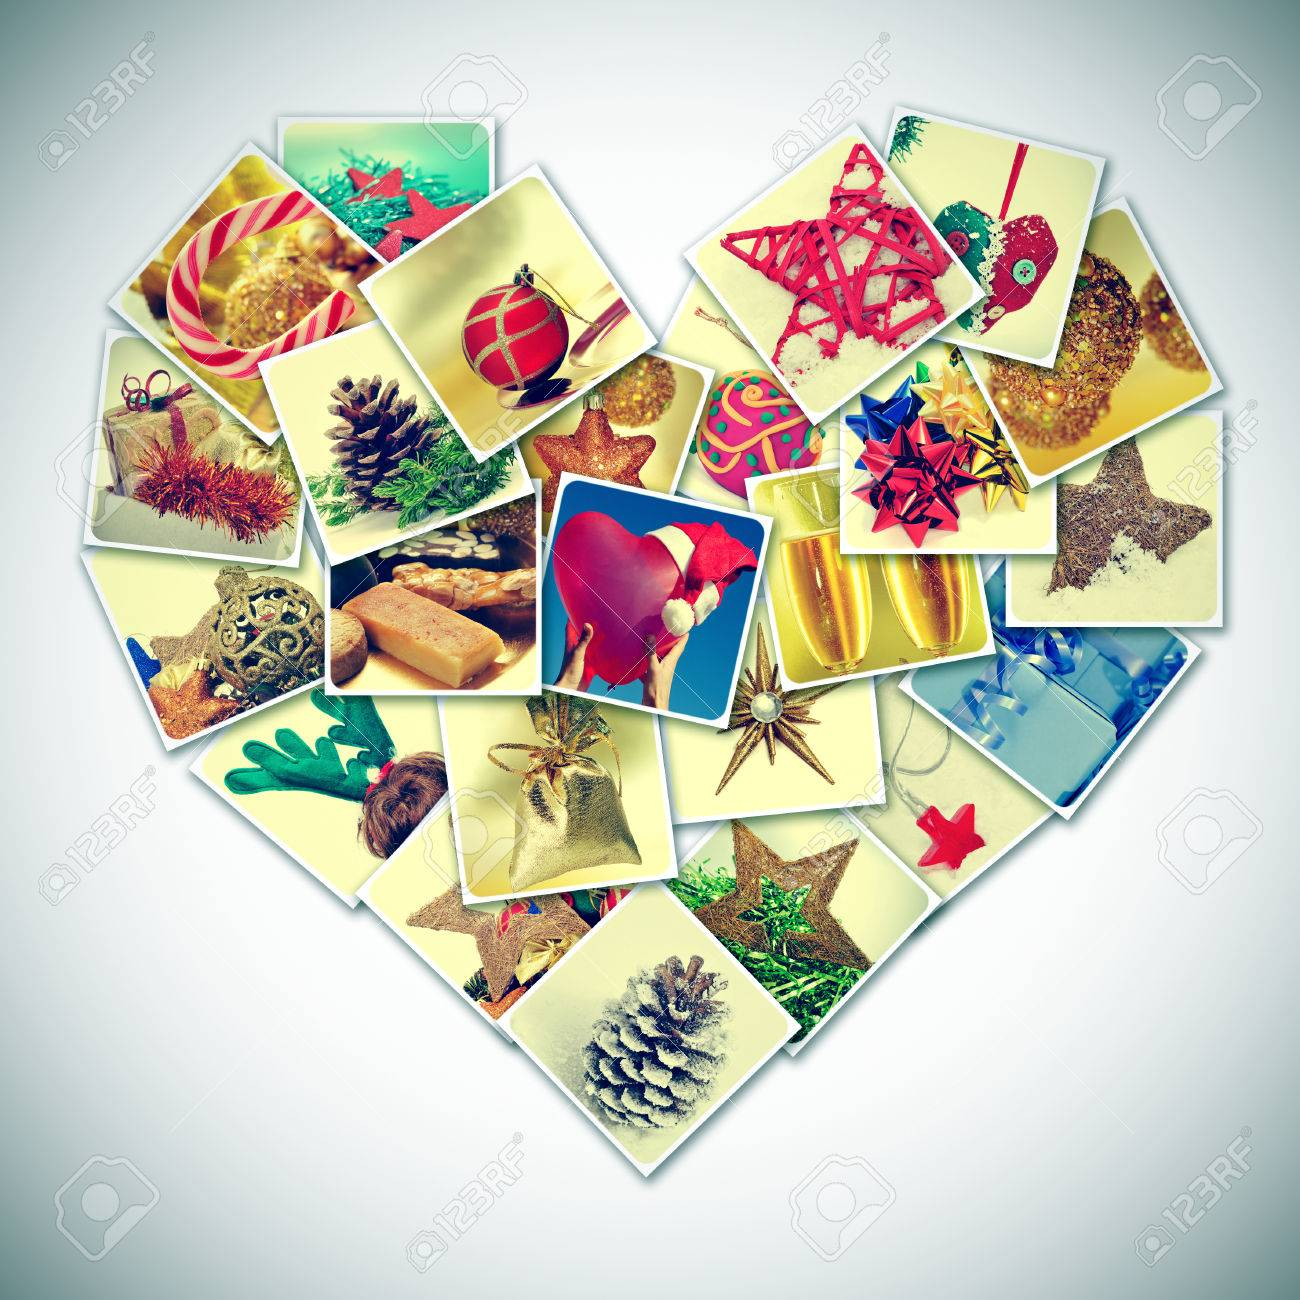 a collage of different pictures of christmas items forming a heart, with a  retro effect